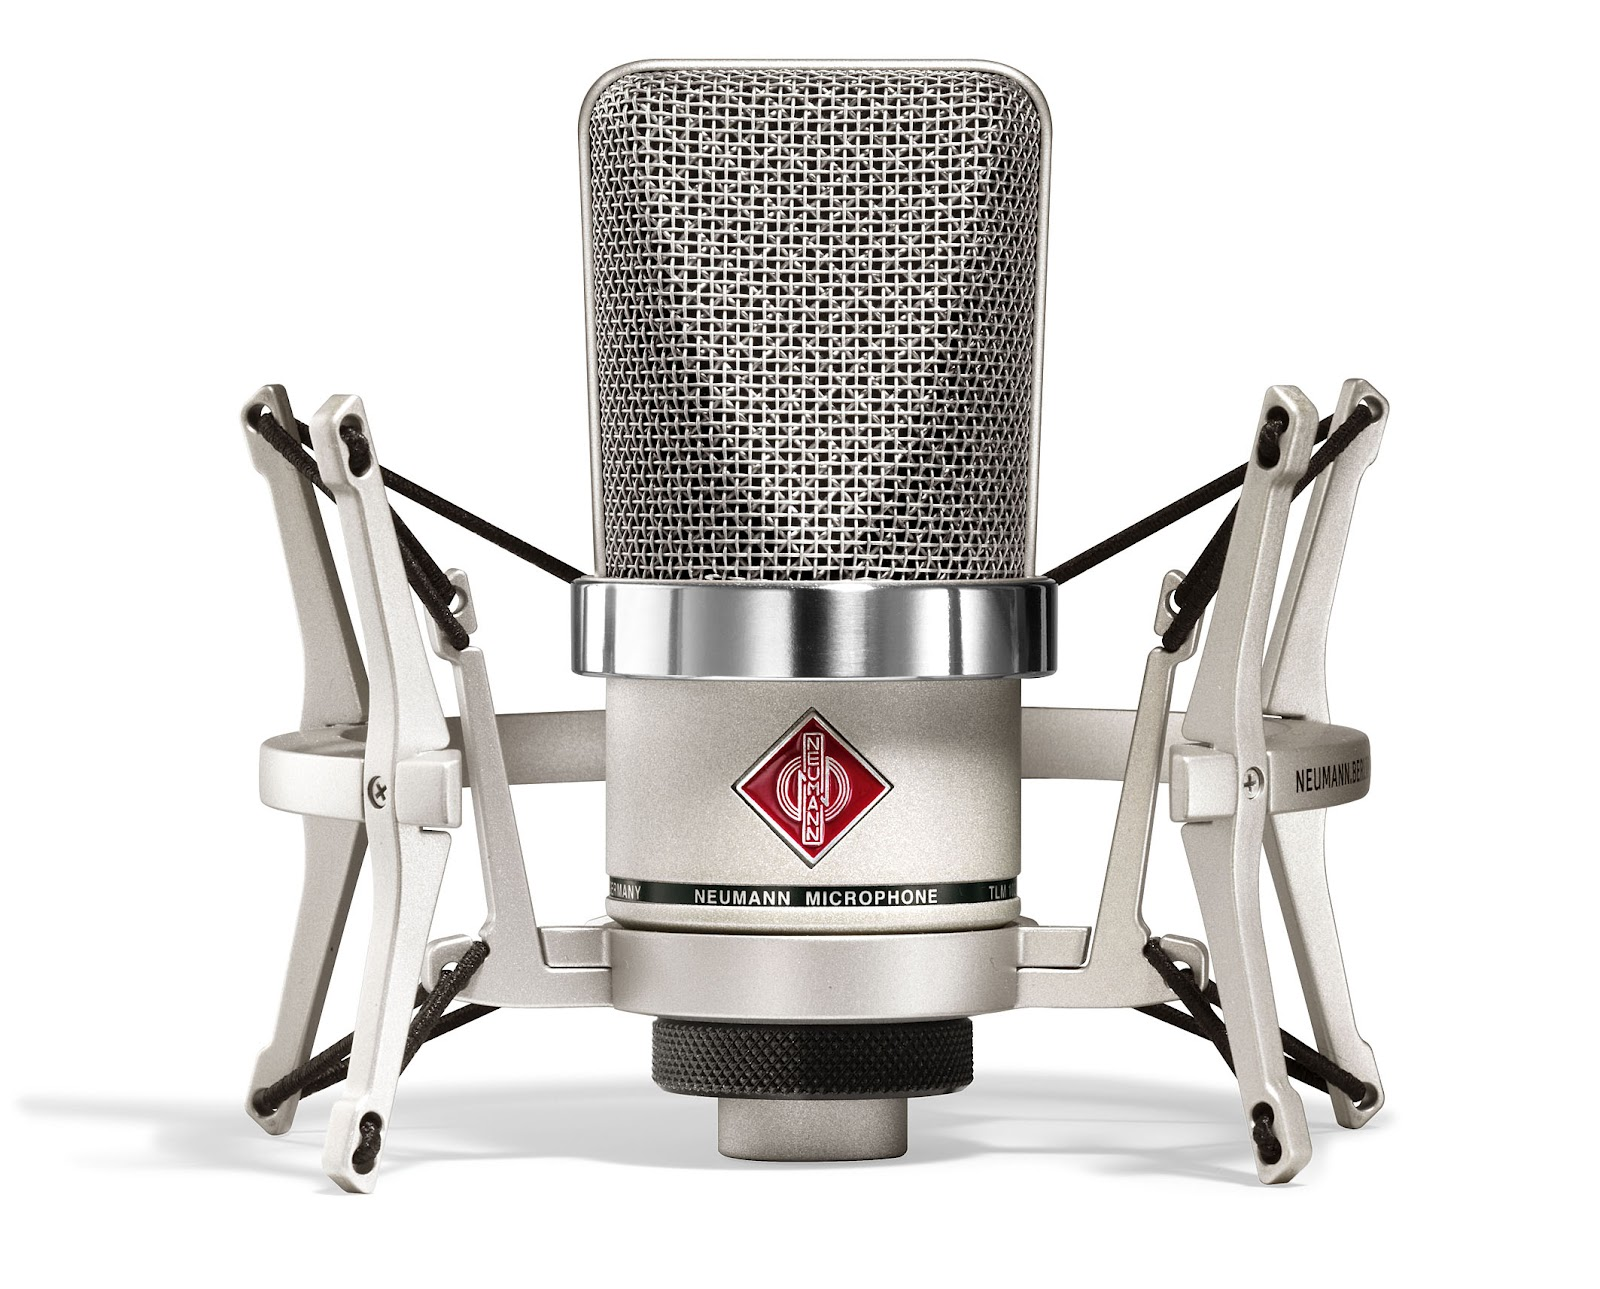 Ty Ford Audio and Video: Neumann TLM 102 - The VolksMikrofon